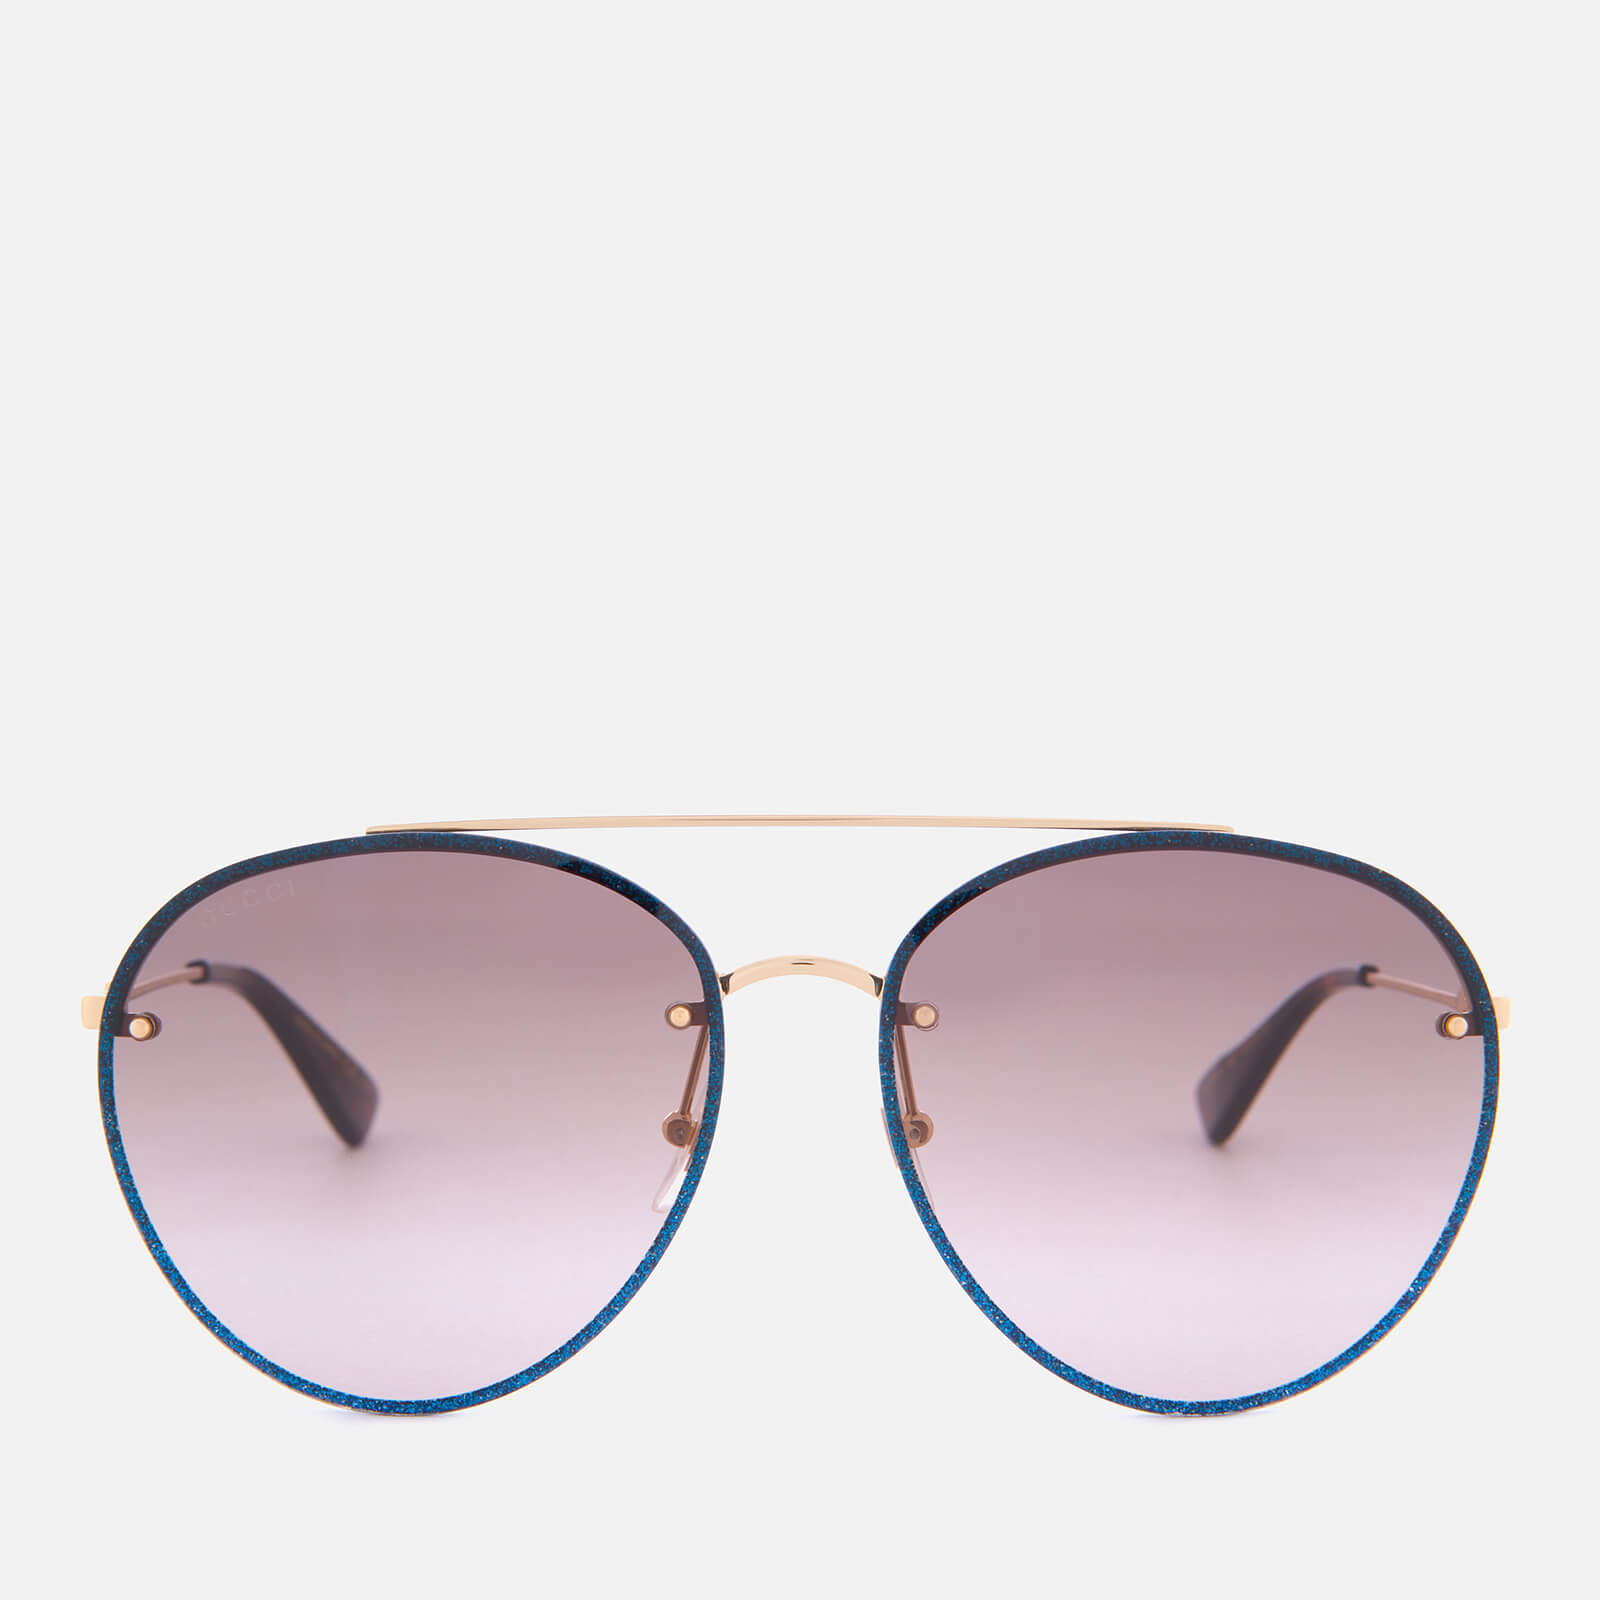 da1b0aaf84 Gucci Women s Metal Frame Round Sunglasses - Gold Brown - Free UK Delivery  over £50